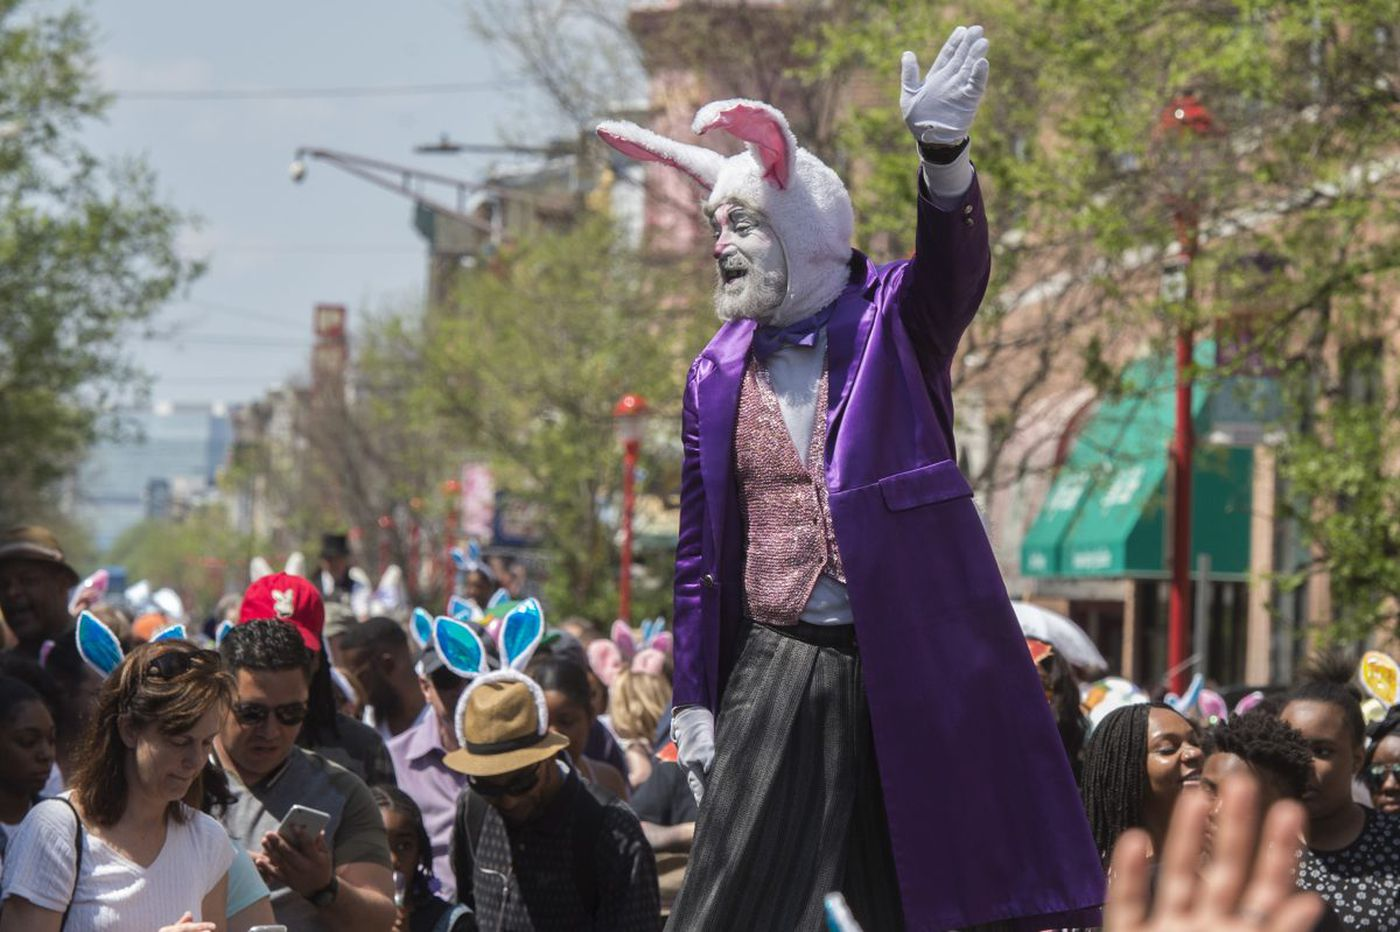 Where to celebrate Easter with the family in Philadelphia this year